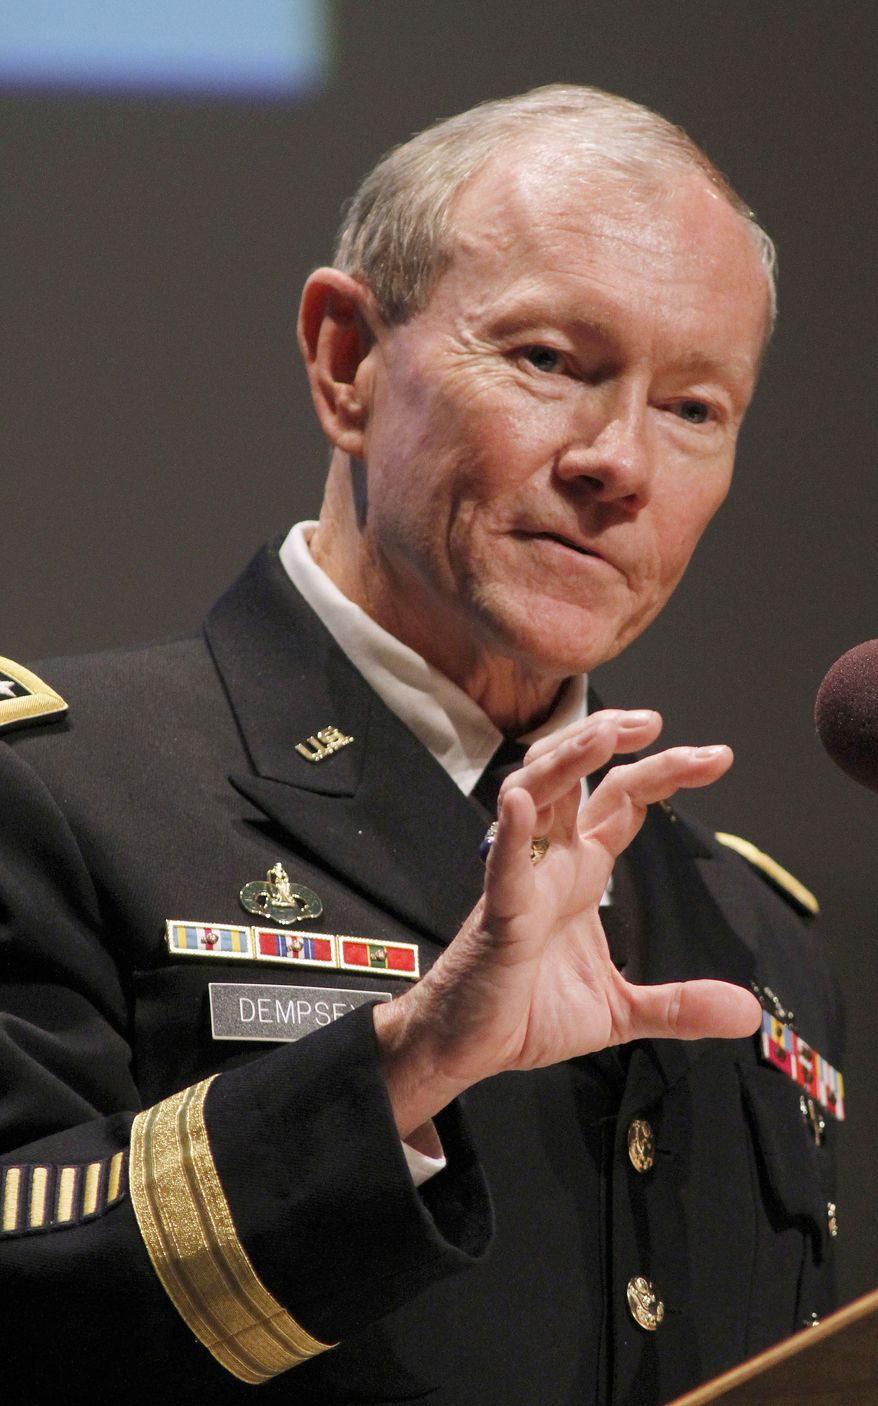 U.S. Army Gen. Martin E. Dempsey is chairman of the Joint Chiefs of Staff. (AP Photo/Jim R. Bounds)